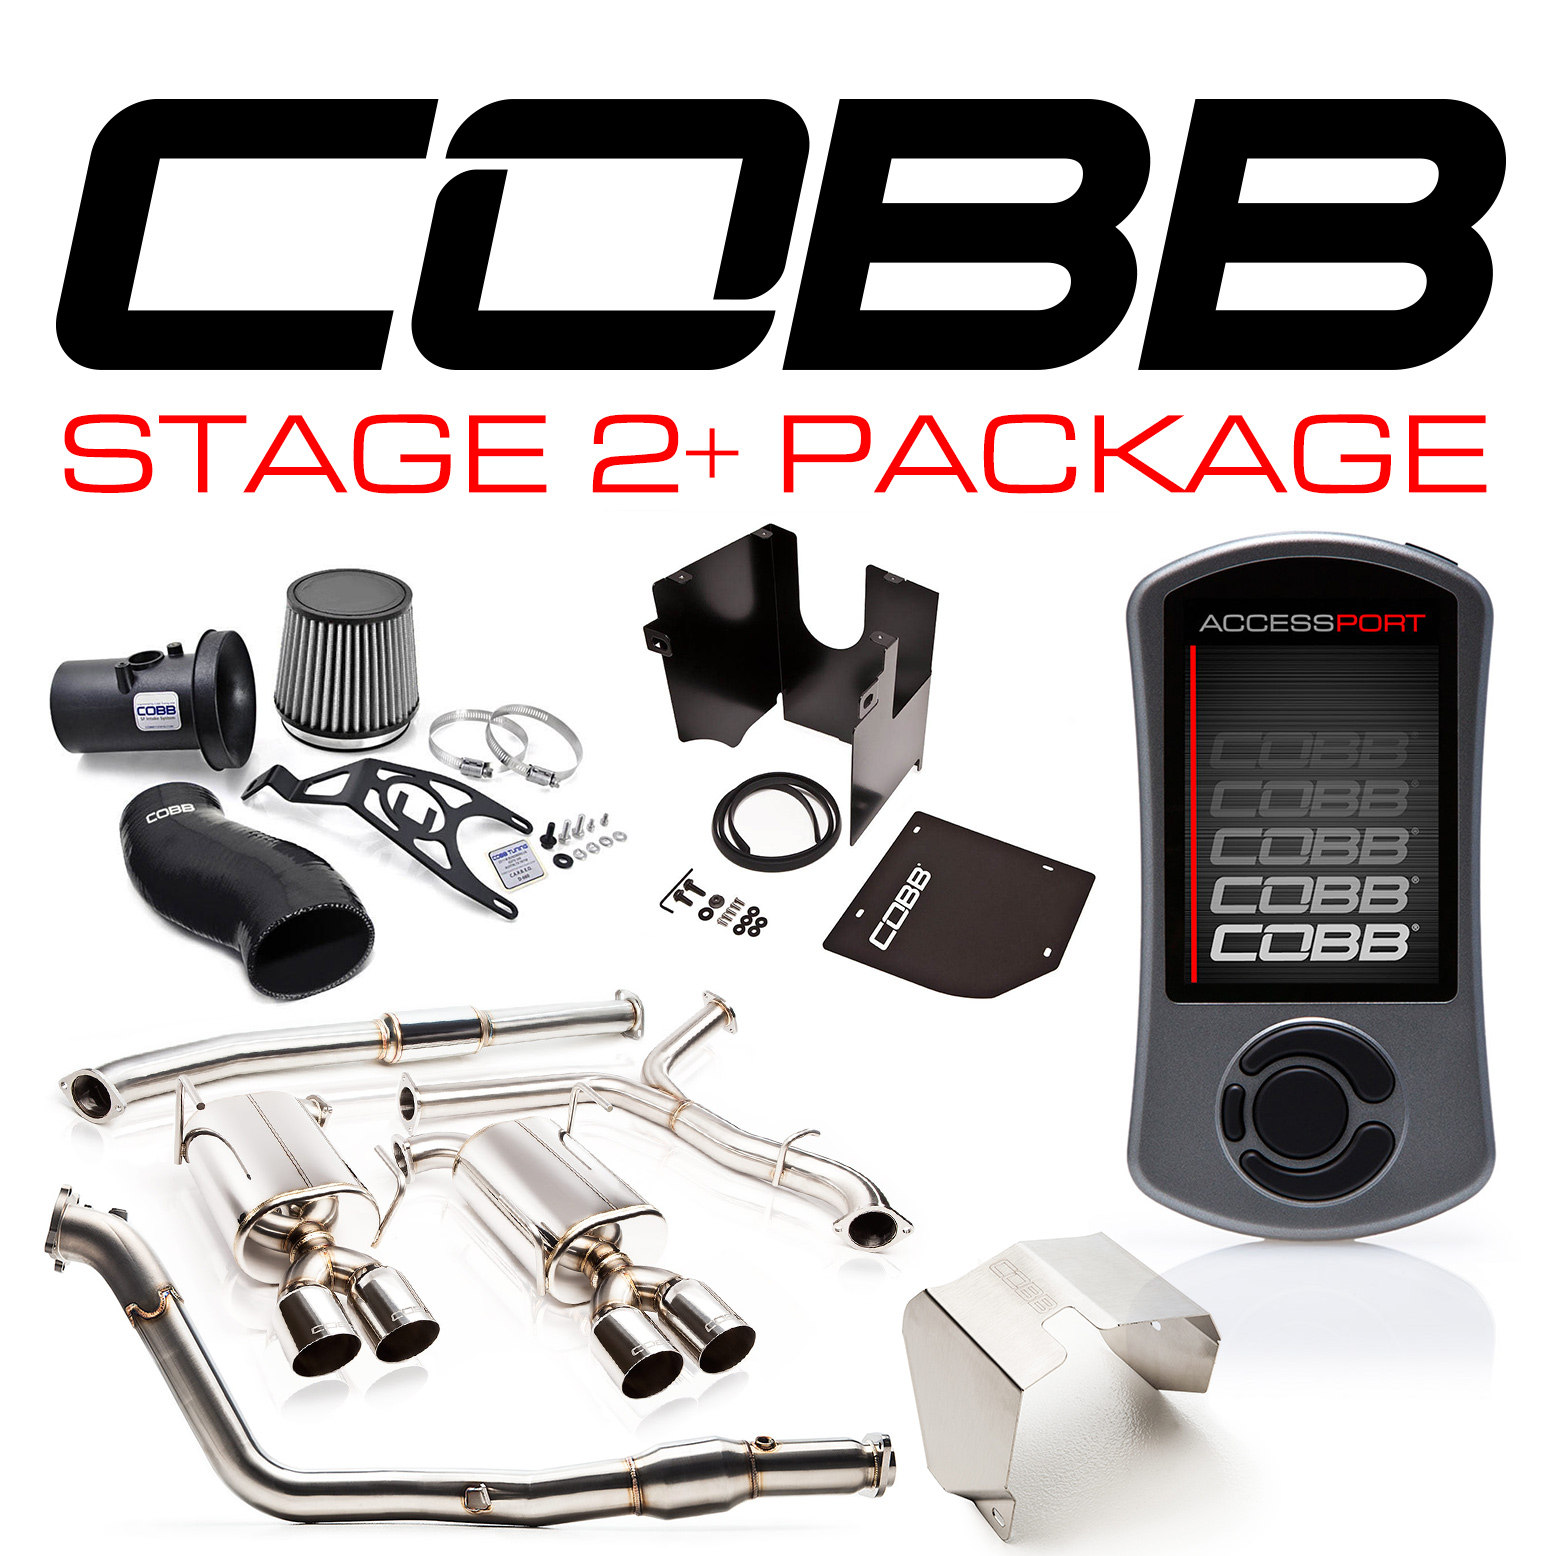 Cobb Stage 2 Power Package Sti Sedan 2011 2014 Cobb Sti Sedan Stg2p 615x82p 2 835 00usd Stratified Automotive Controls